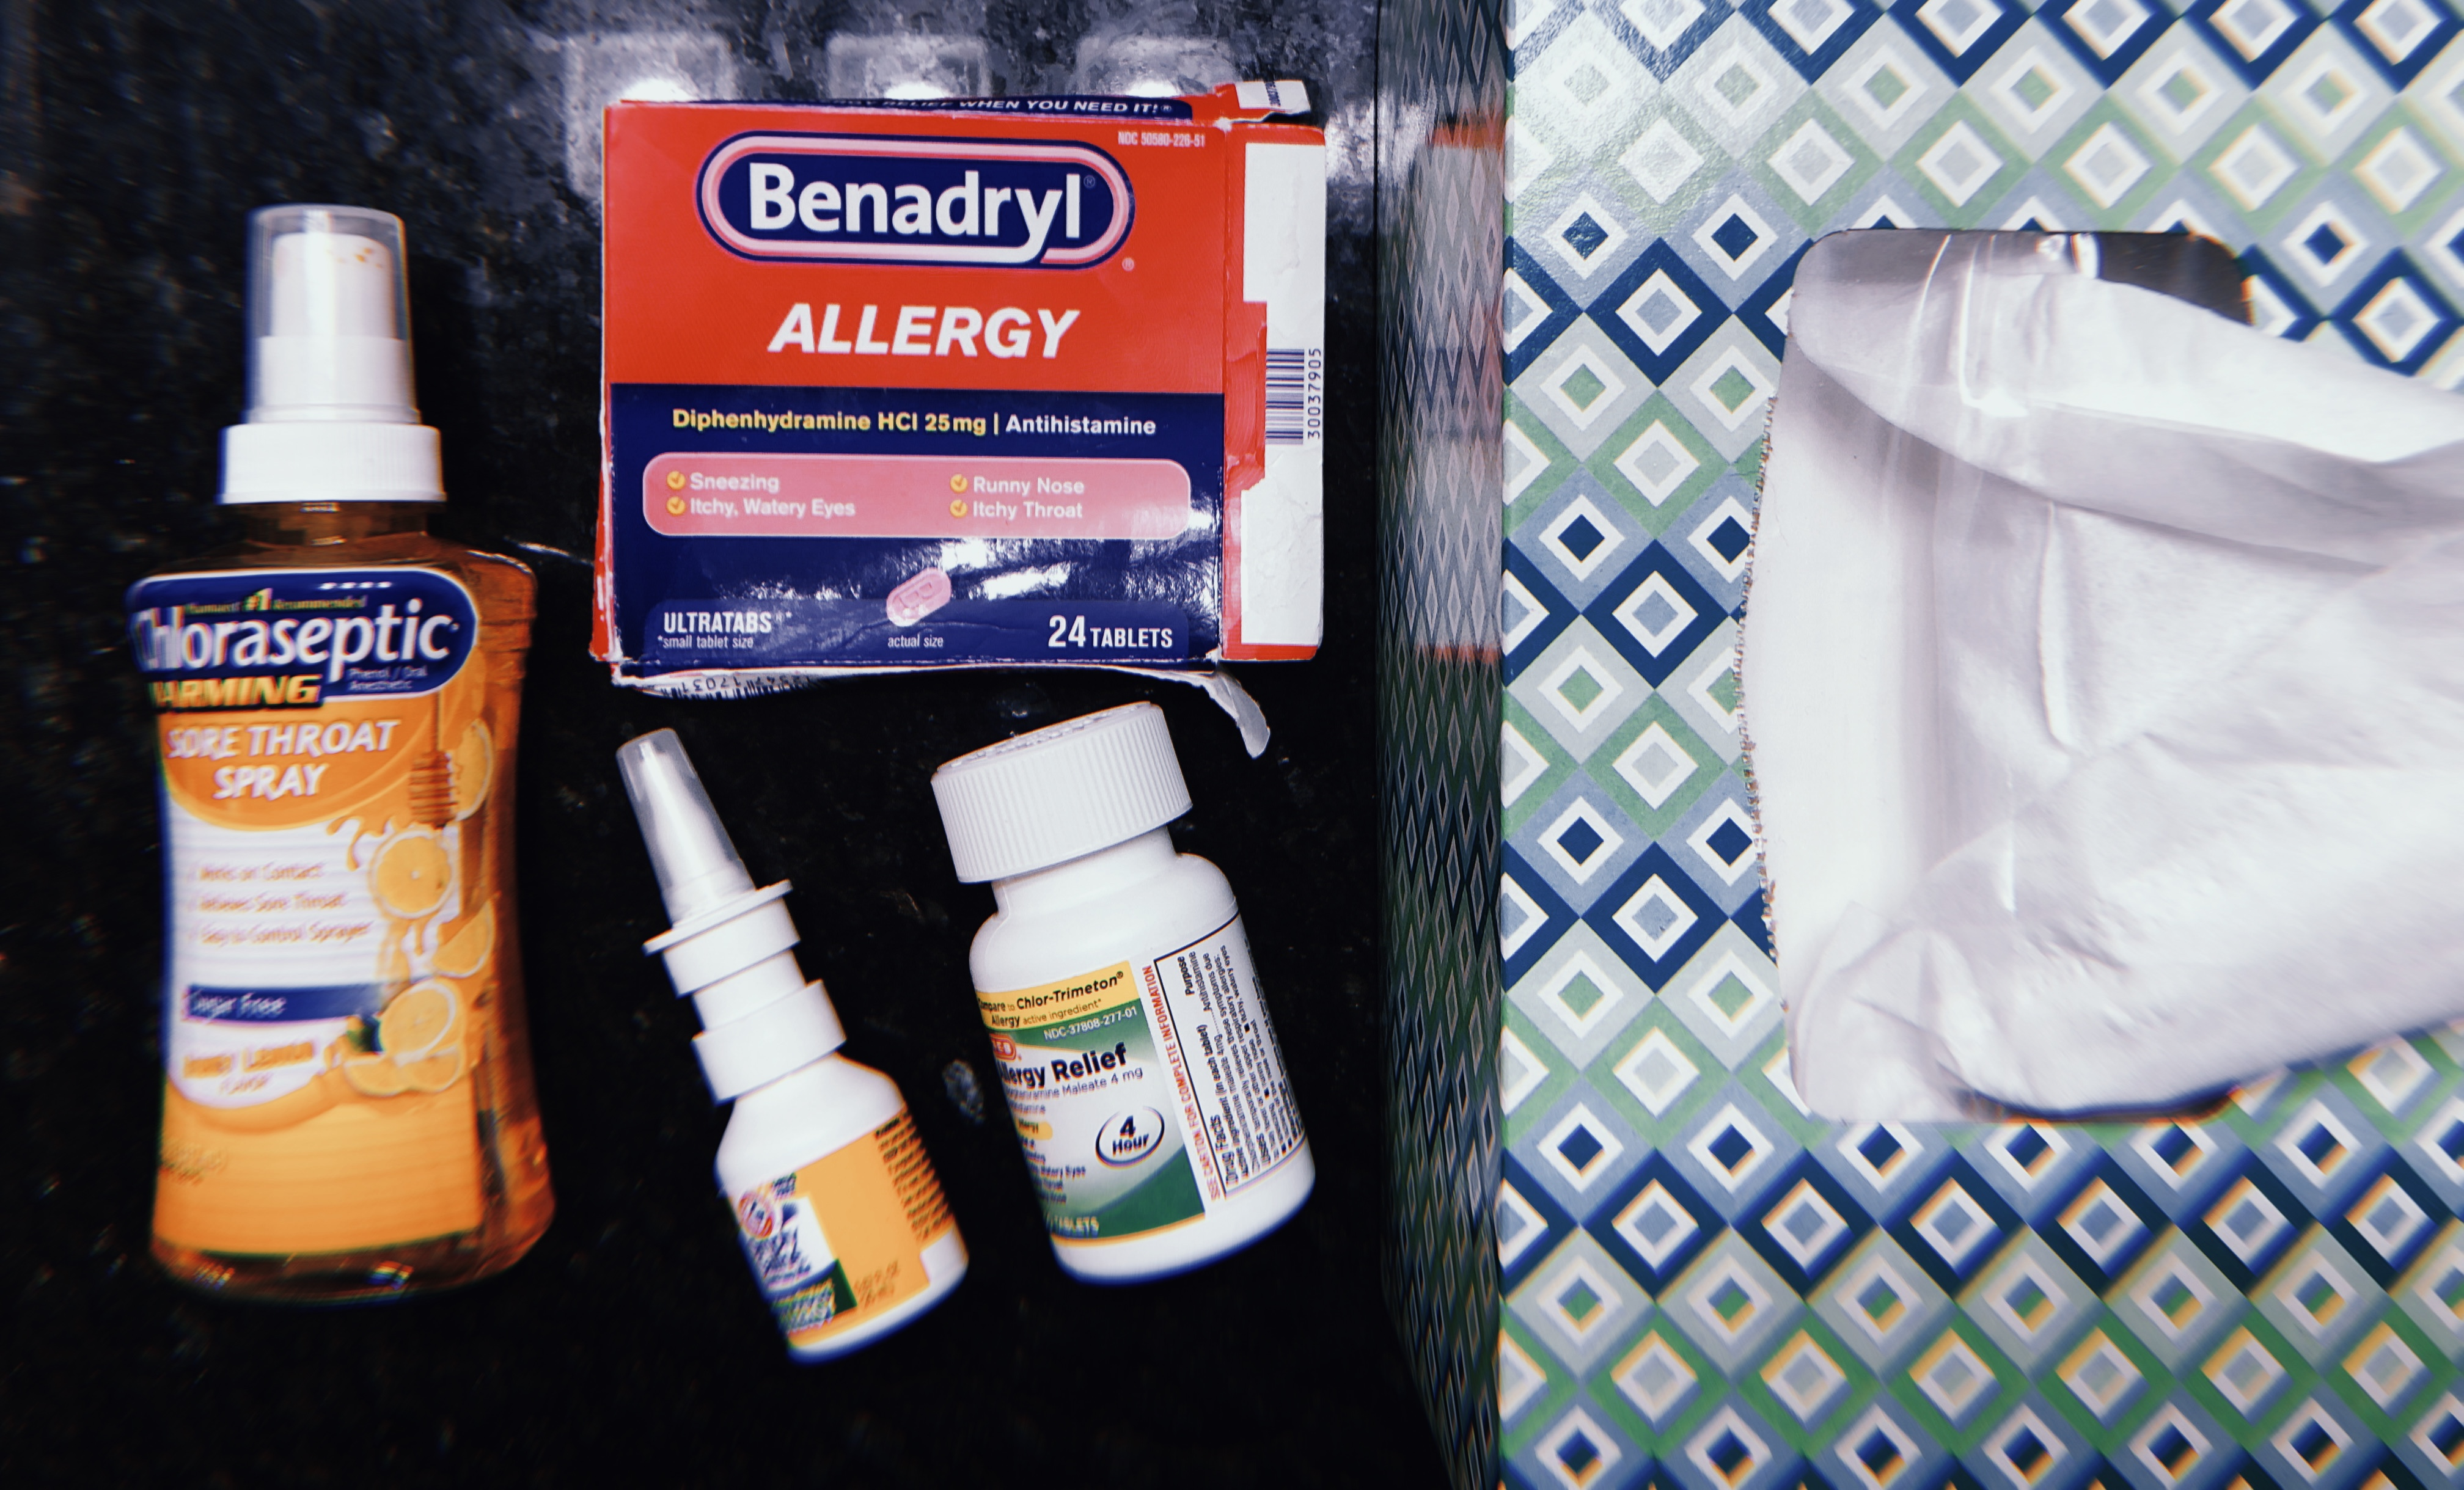 Chloraseptic throat spray, nasal spray, Benadryl, a bottle of allergy pills and a box of tissues.